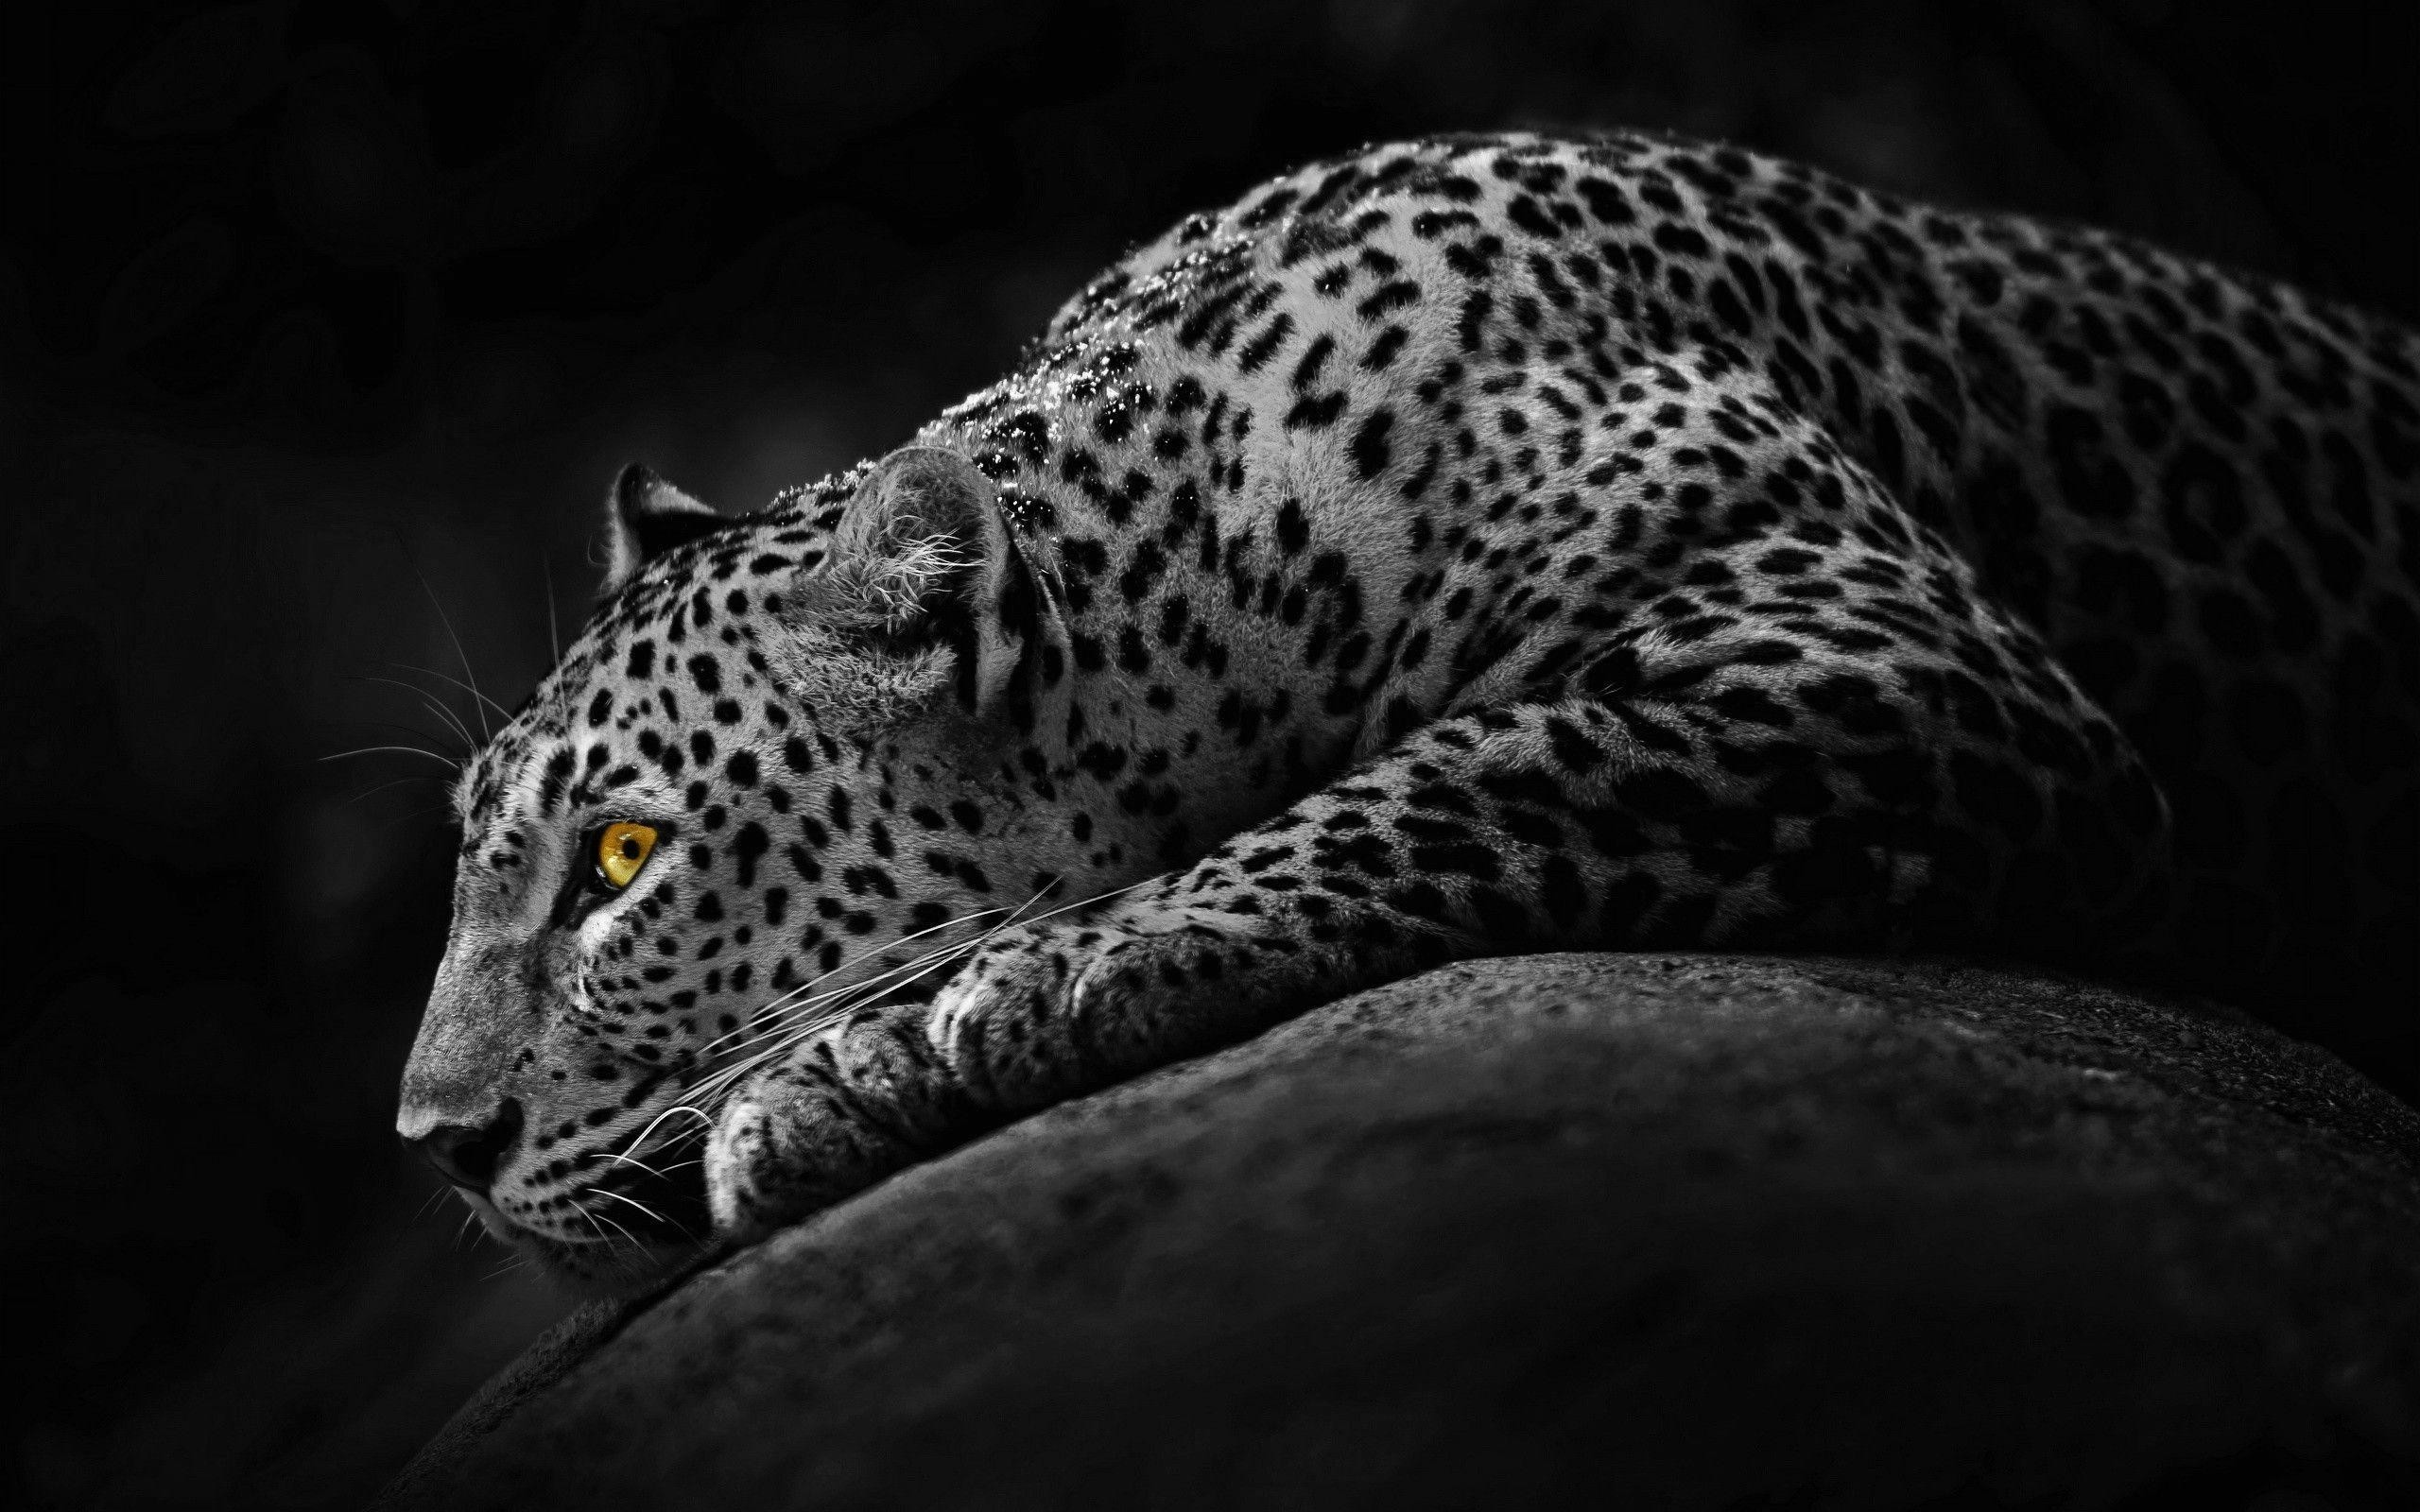 2560x1600 Jaguar Animal Wallpapers - Full HD wallpaper search